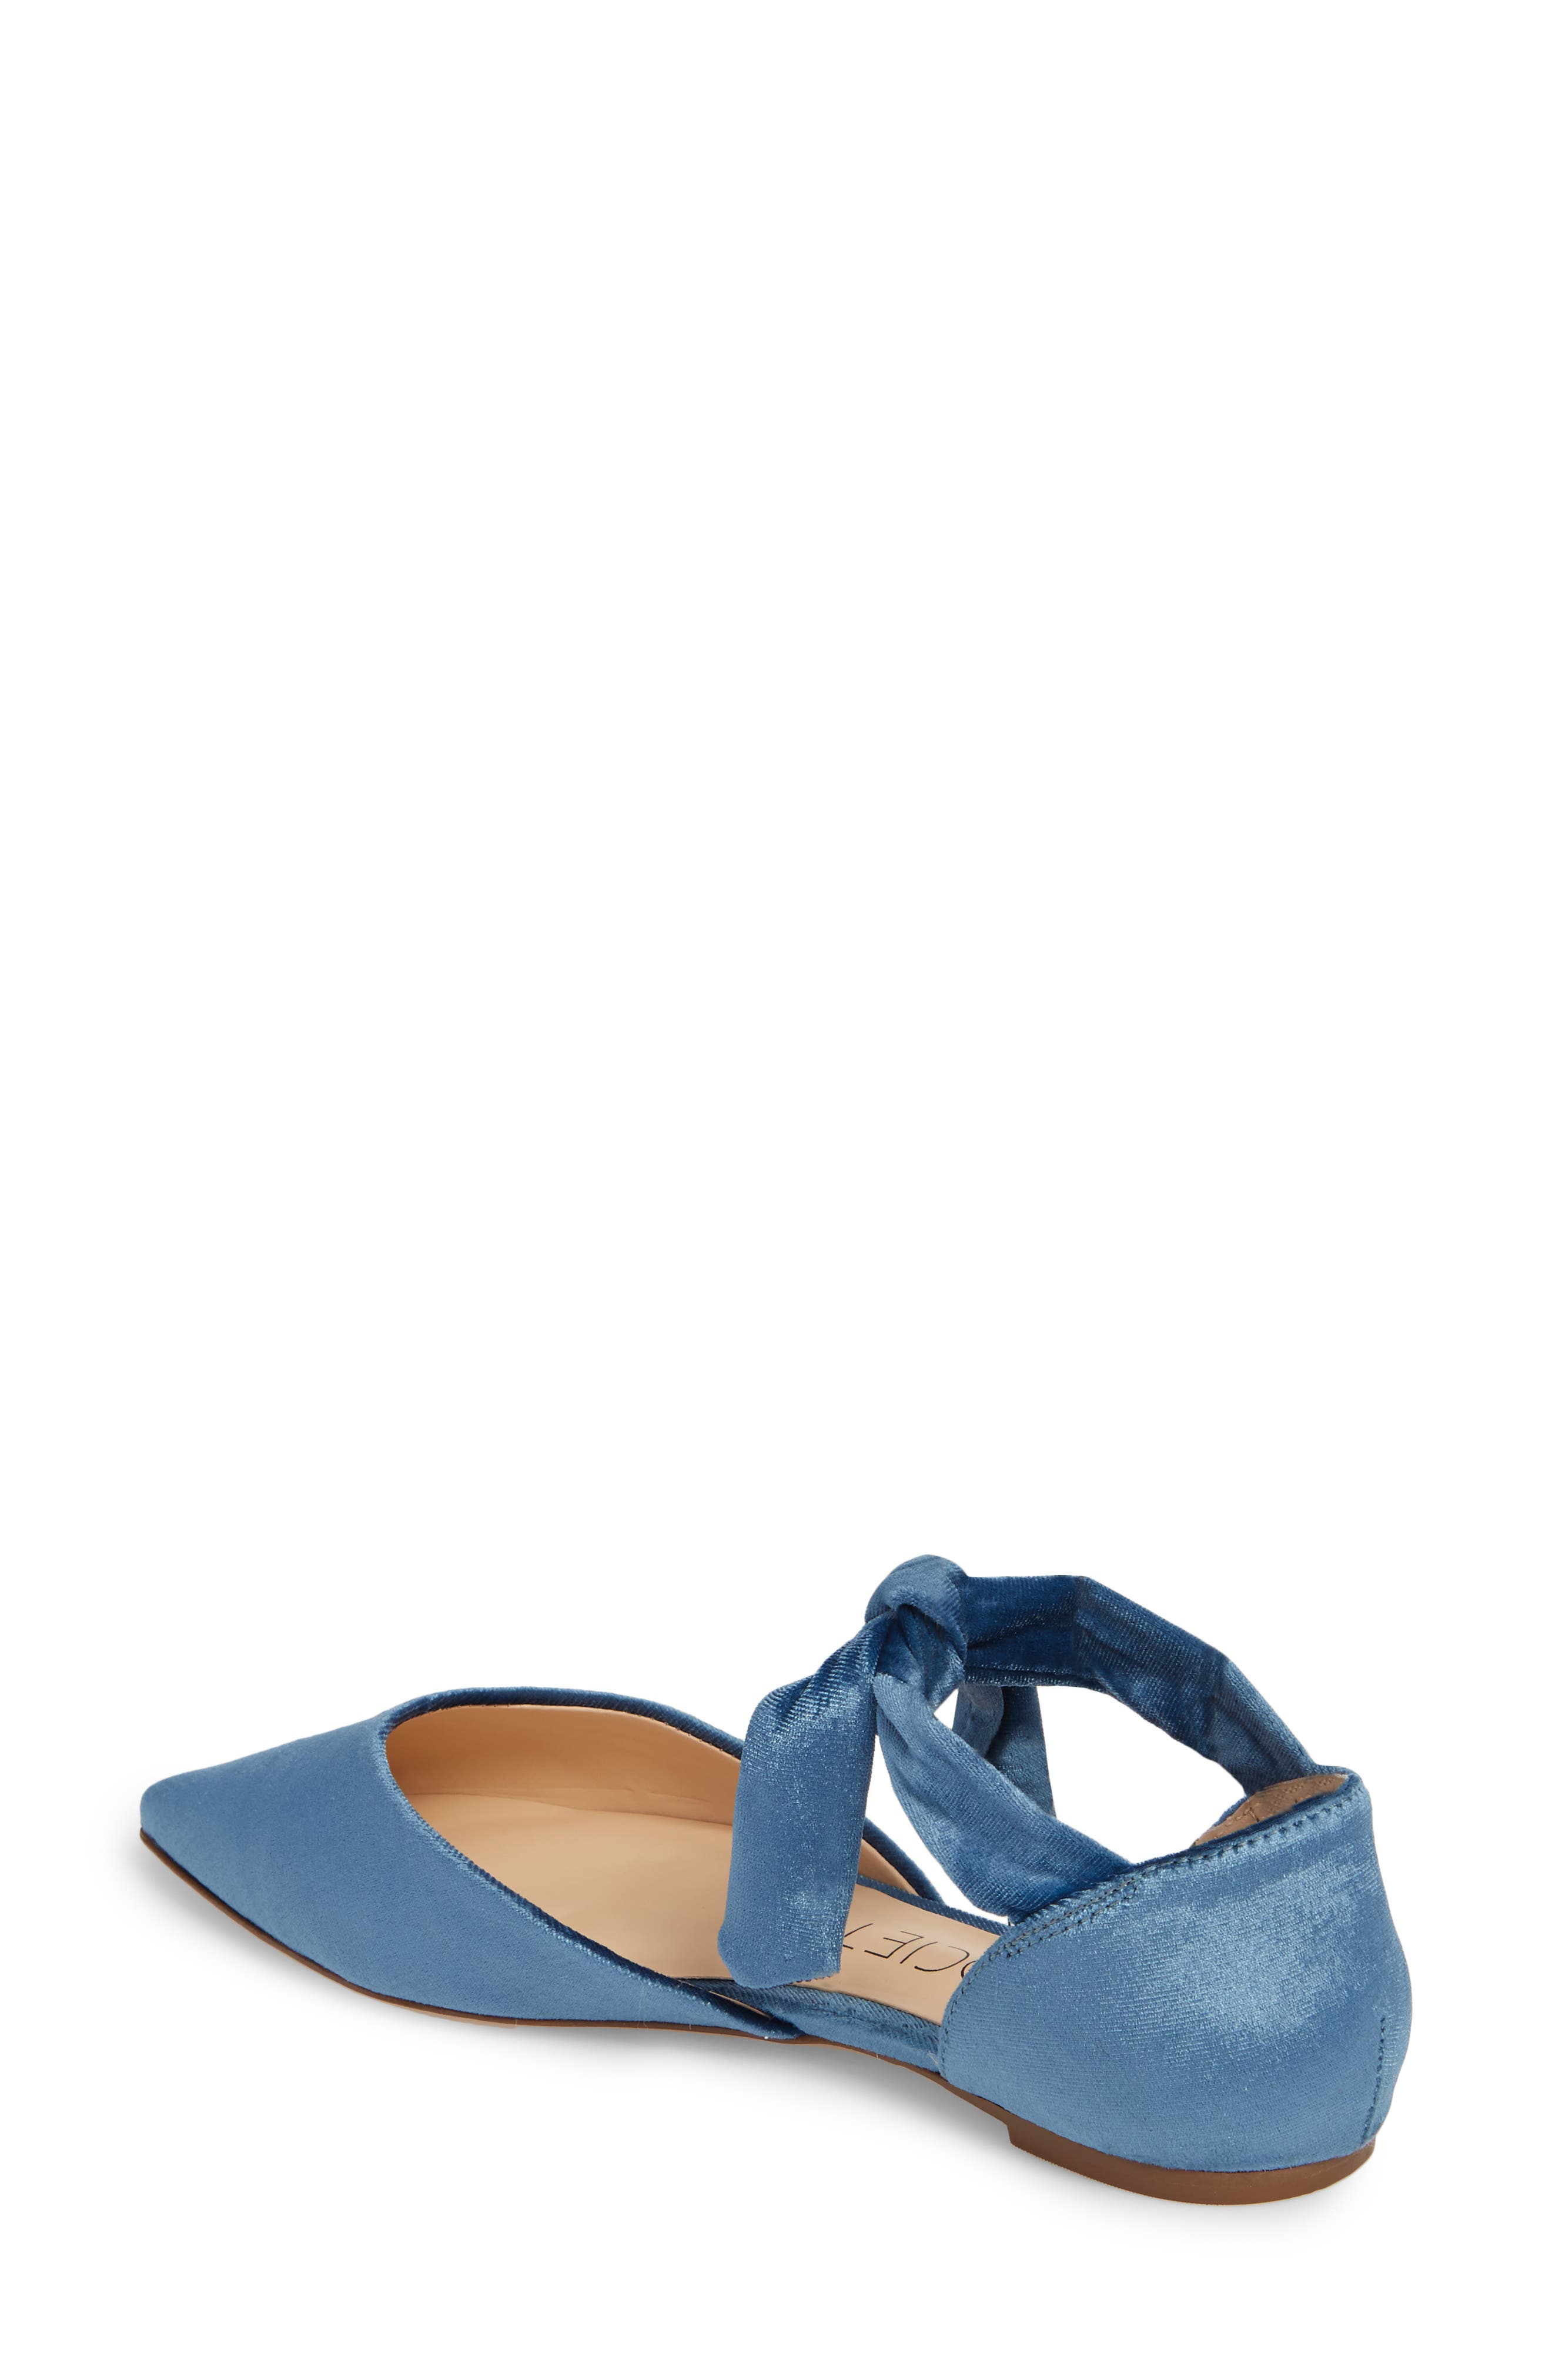 Alternate Image 2  - Sole Society Teena d'Orsay Flat with Ties (Women)